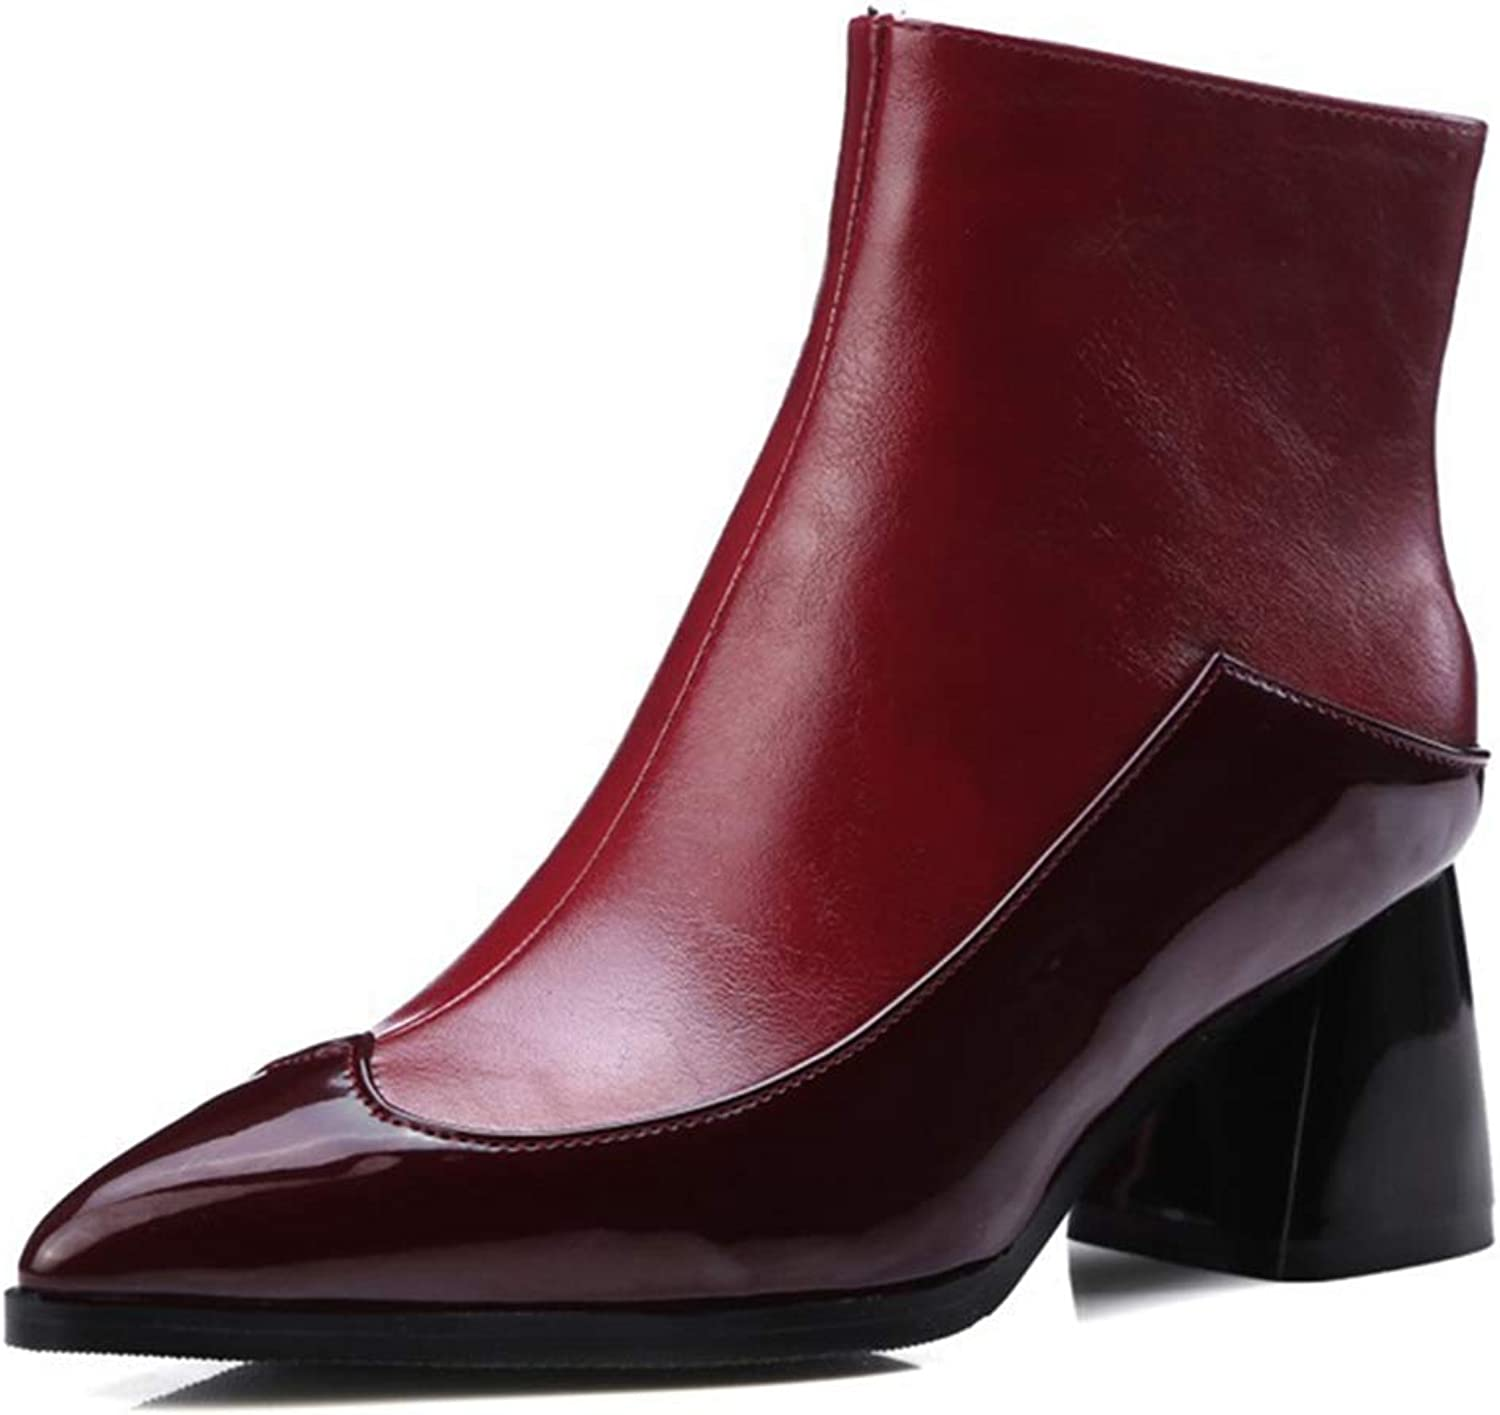 GIY Women's Pointed Toe Western Ankle Boots Fashion Block Heel Side Zip Chelsea Booties Martin Short Boot